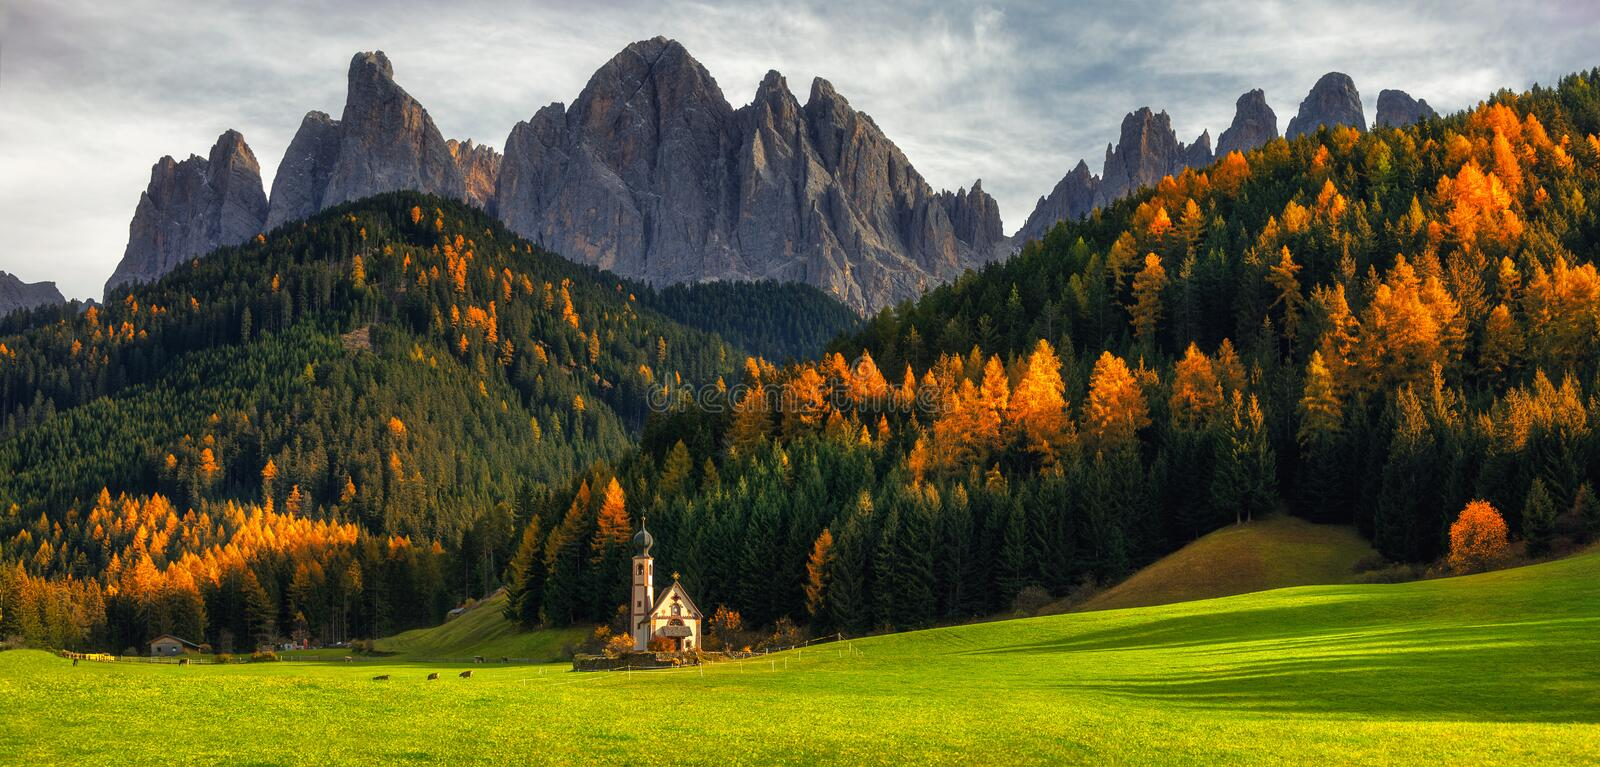 Santa Maddalena St Magdalena village with magical Dolomites mo. Untains in background, Val di Funes valley, Trentino Alto Adige region, Italy, Europe royalty free stock photo